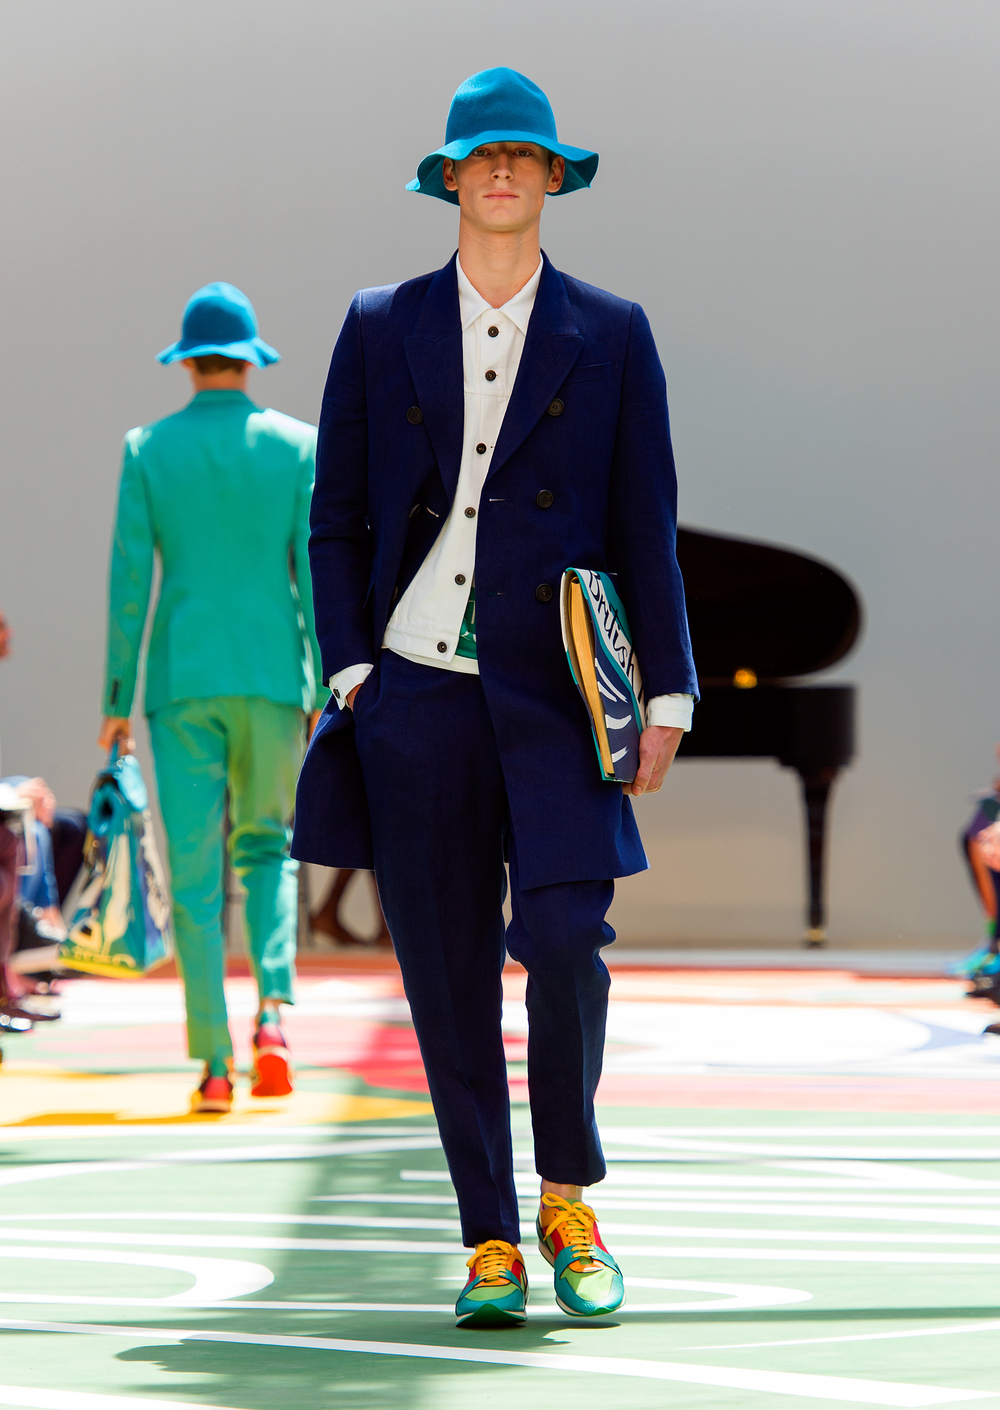 Burberry Prorsum Menswear Spring Summer 2015 Collection - Look 25.jpg